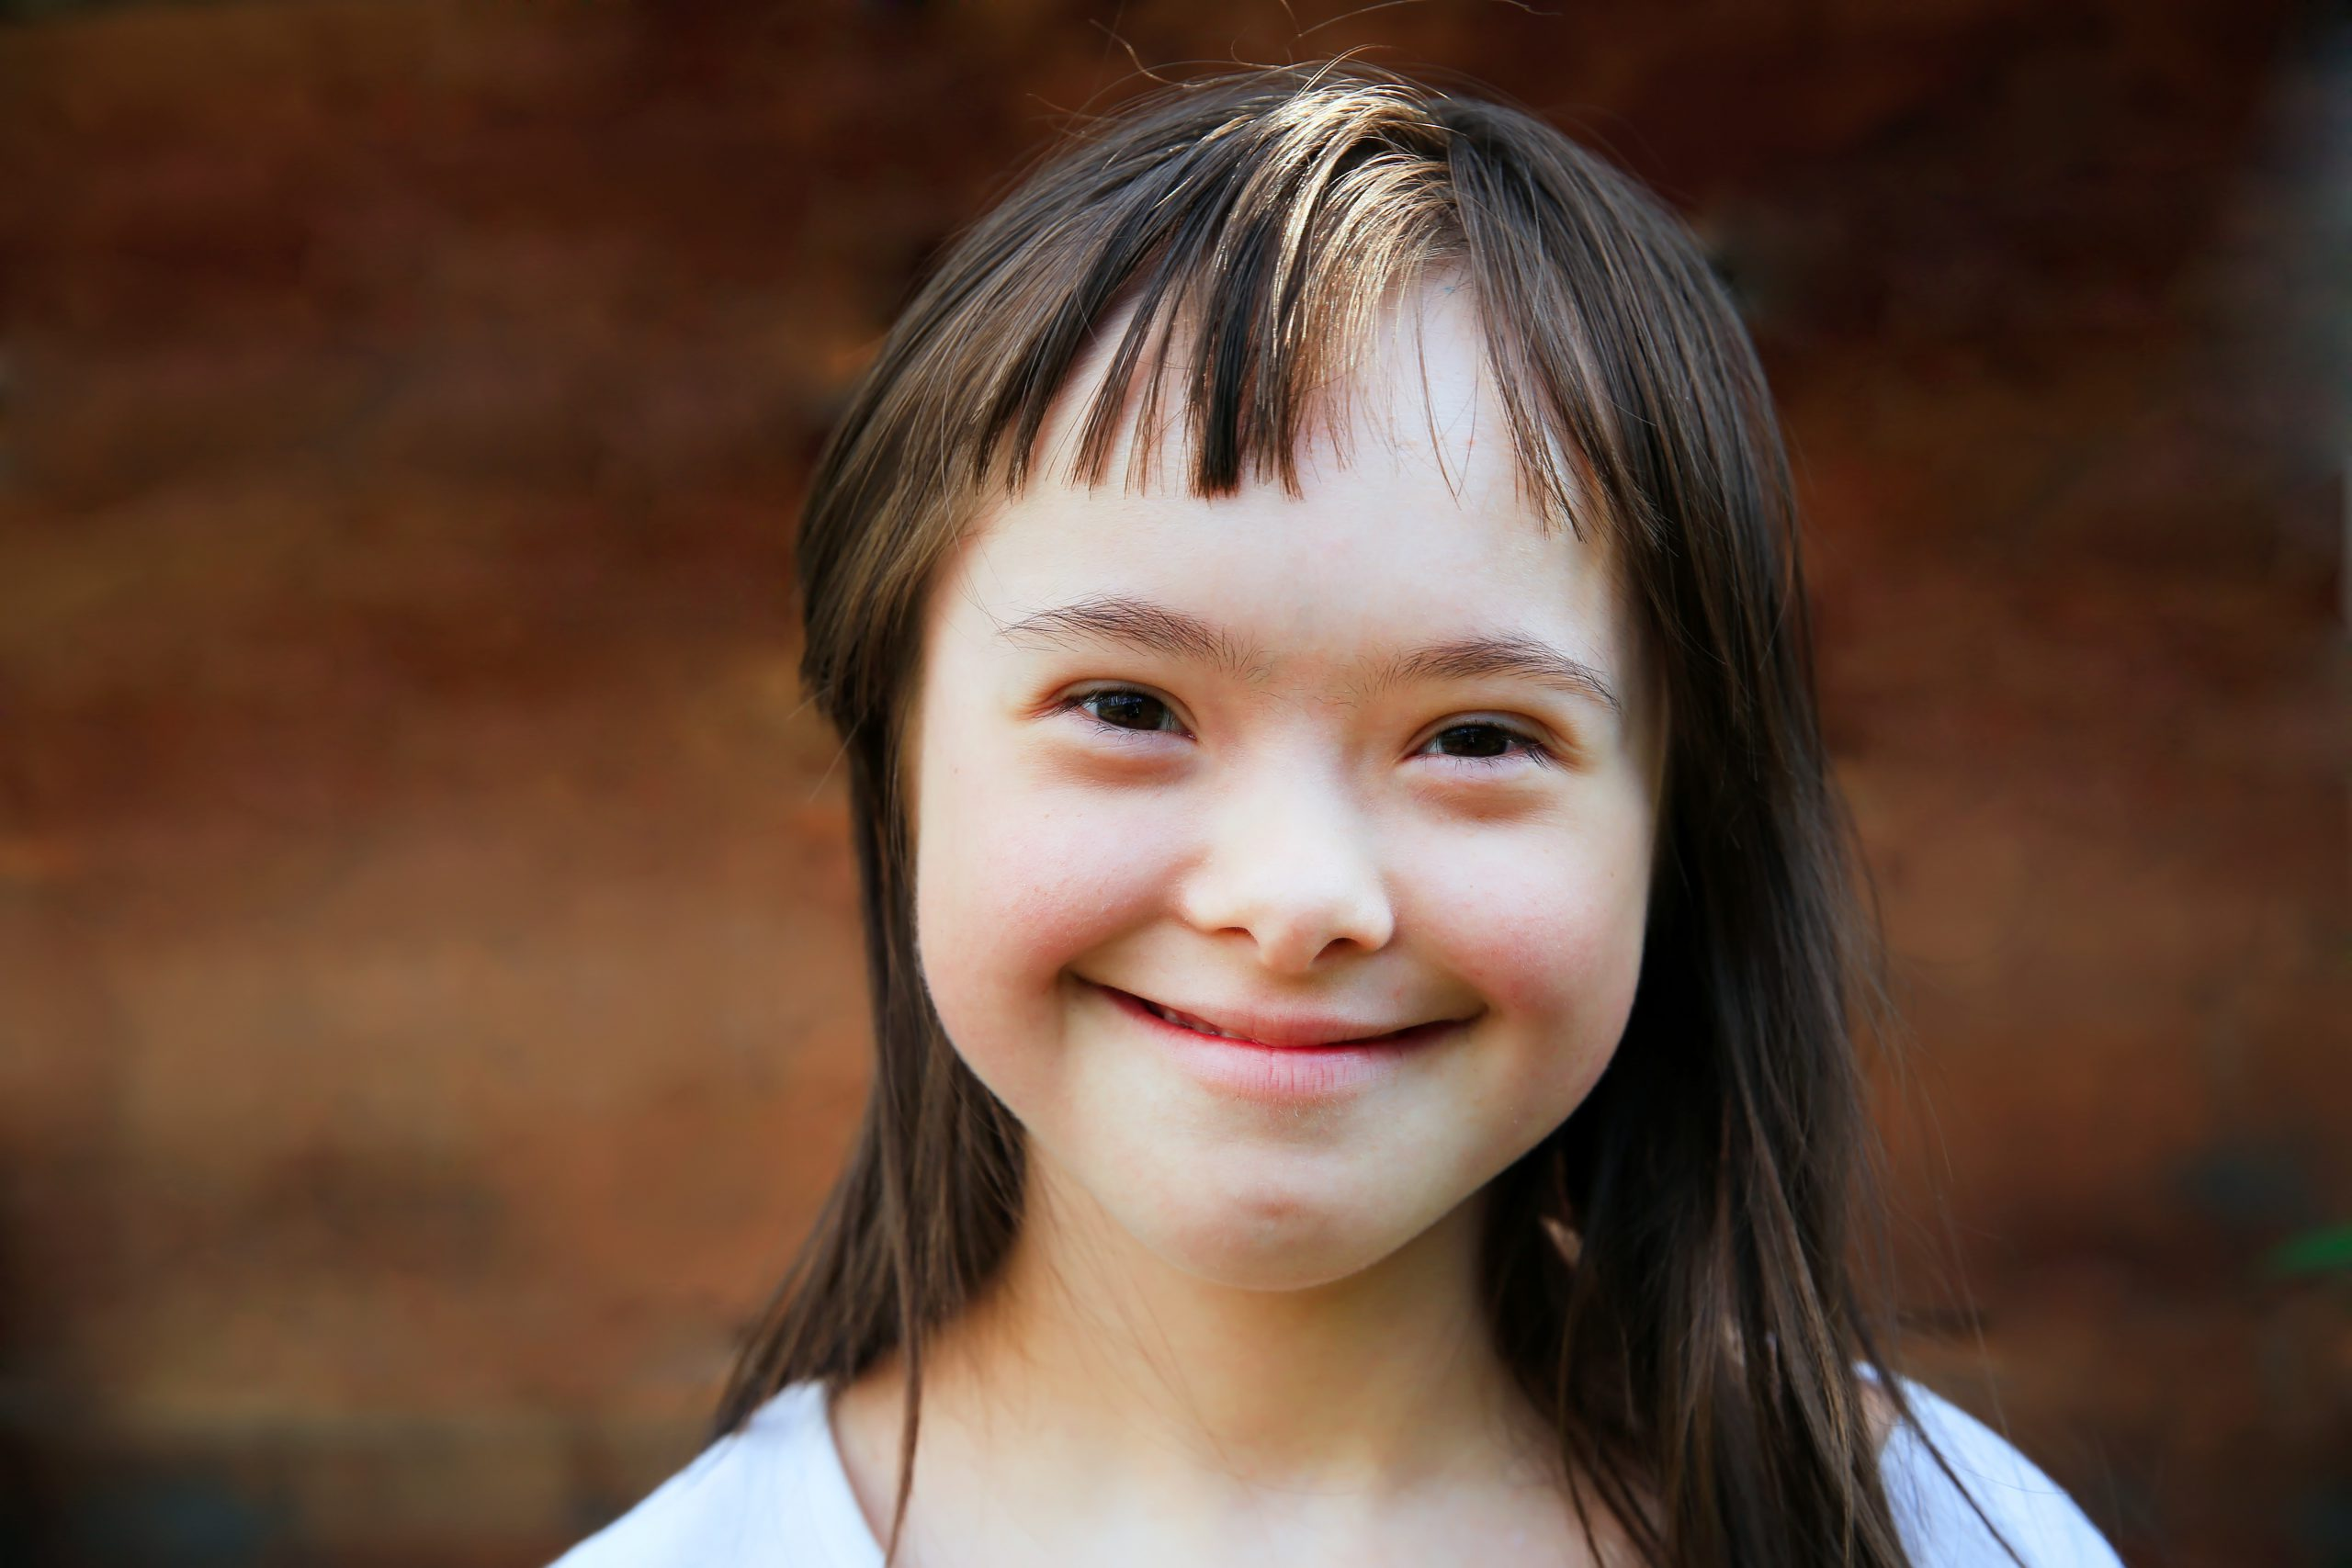 Cute smiling down syndrome girl on the brown background